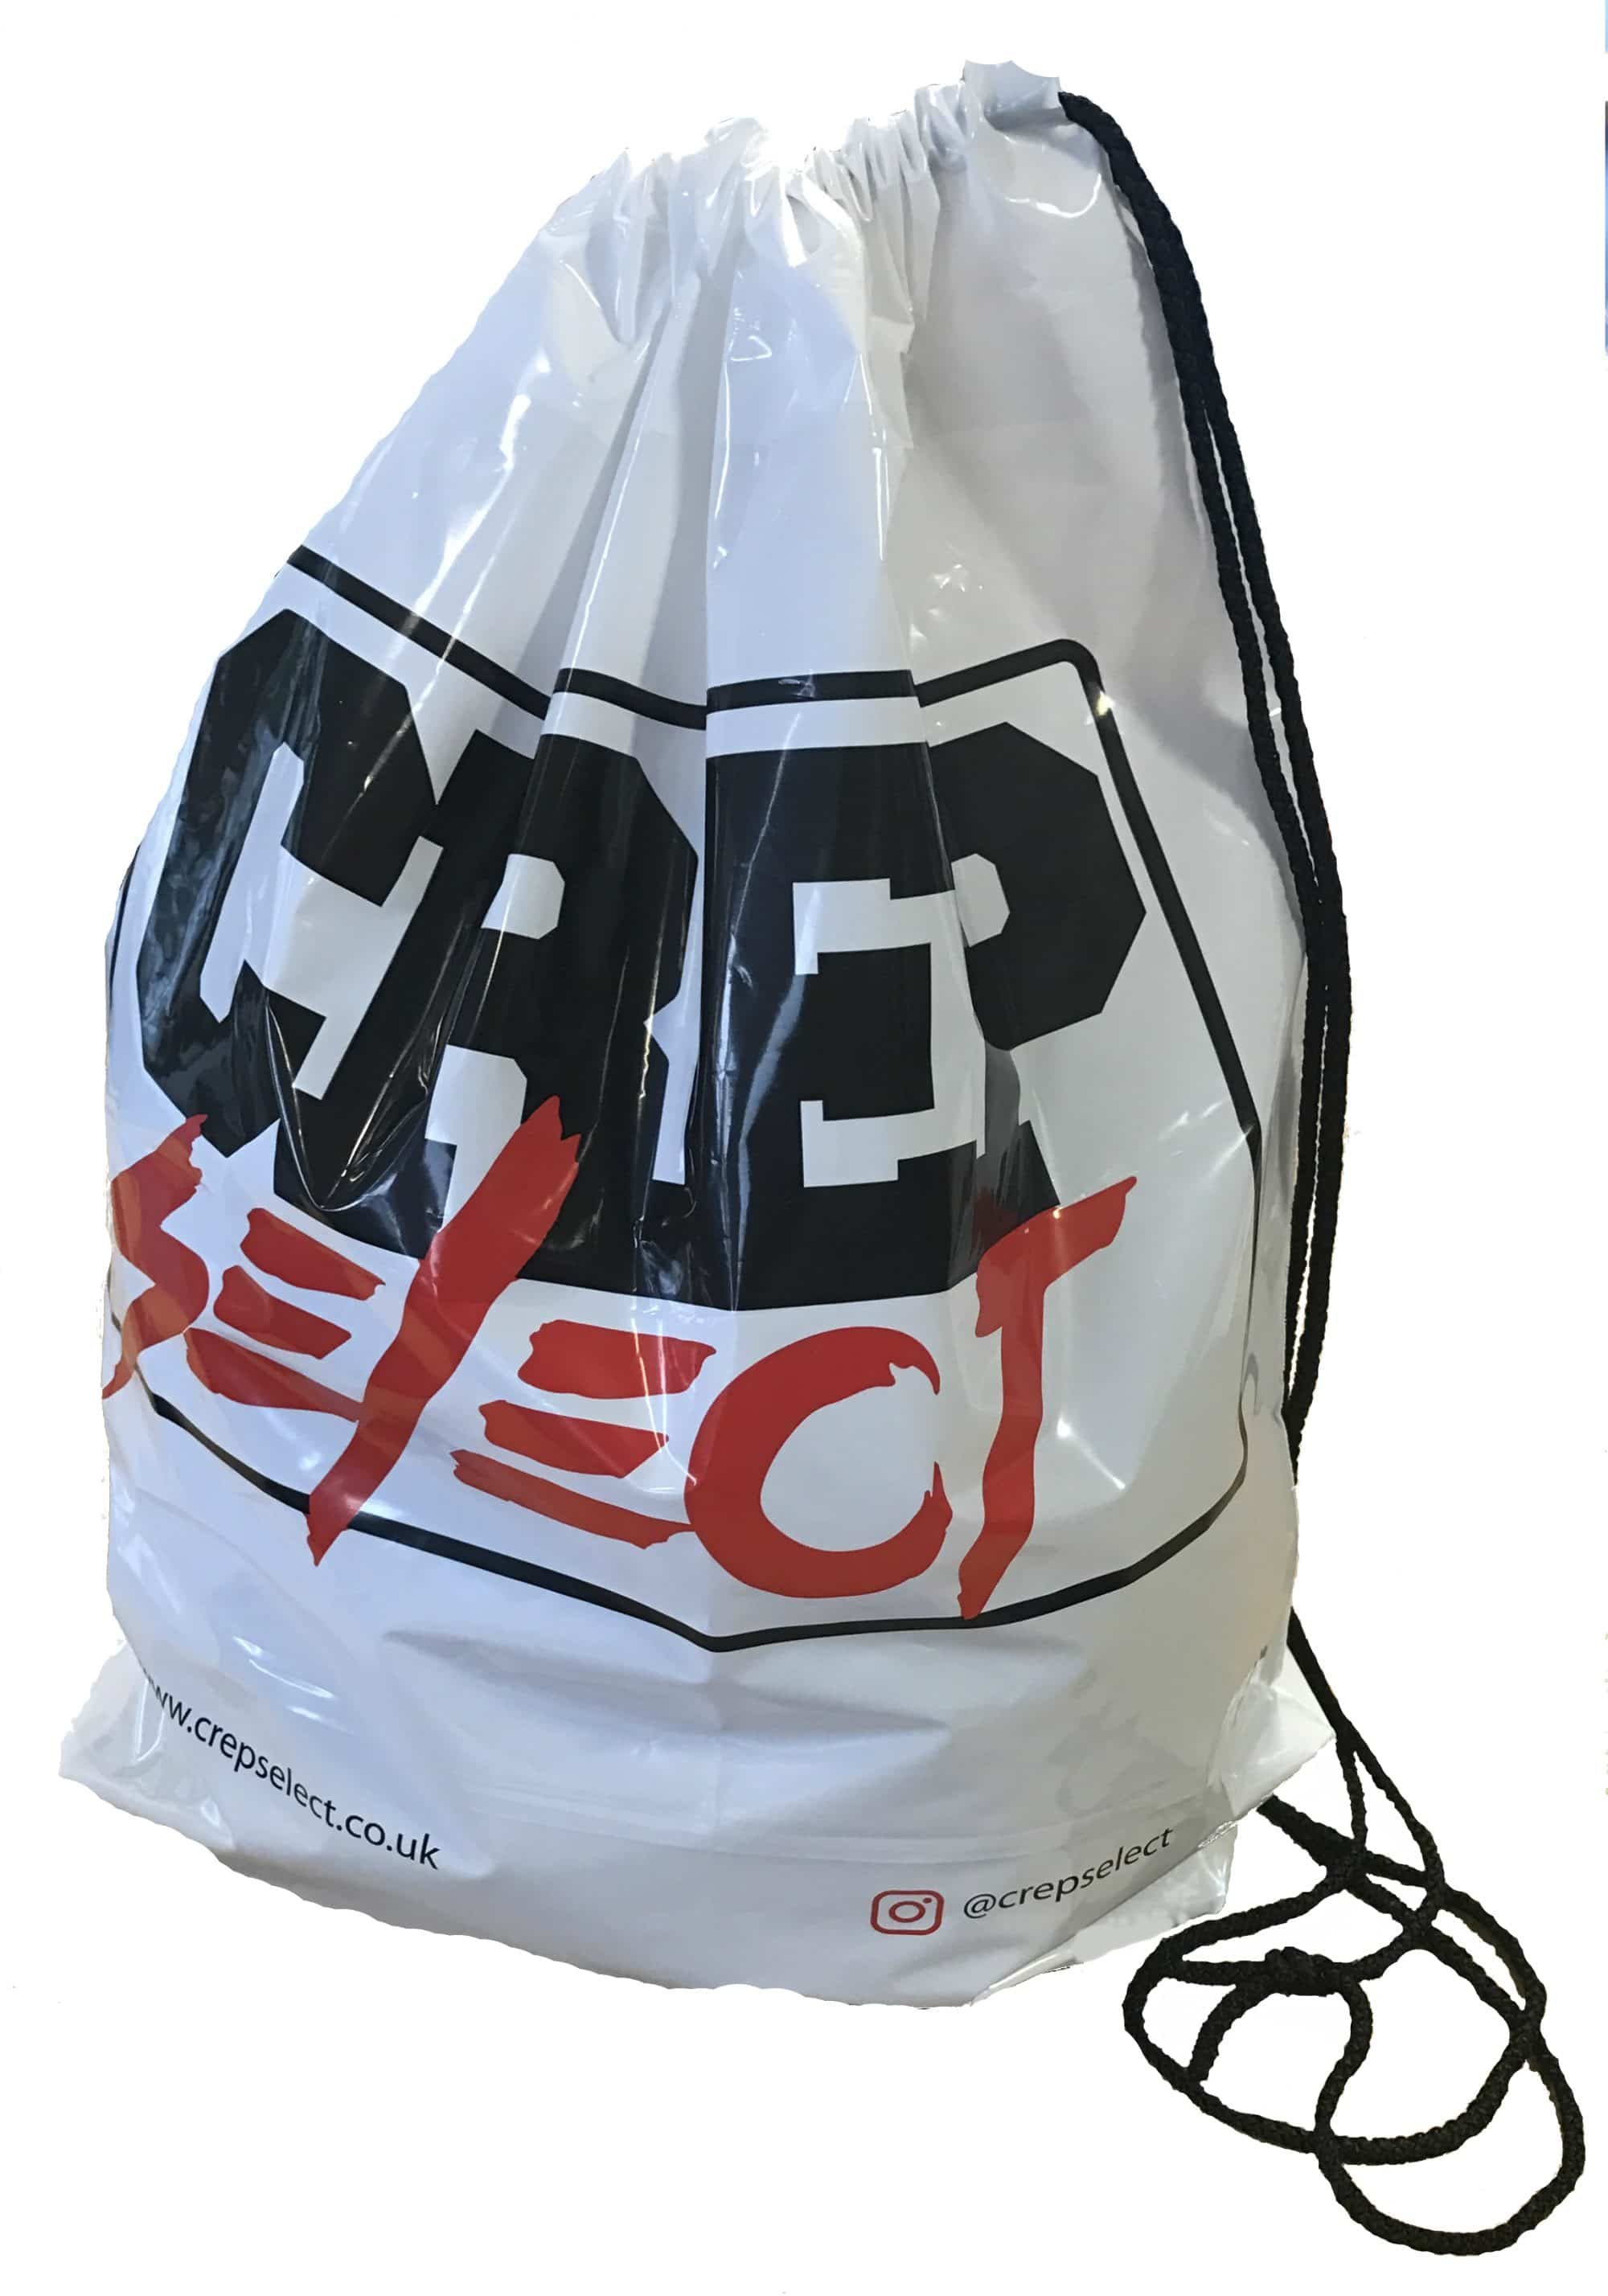 Polythene LDPE duffle bag. Printed duffle bag. Over the shoulder bag with cord handles. Printed with your logo.